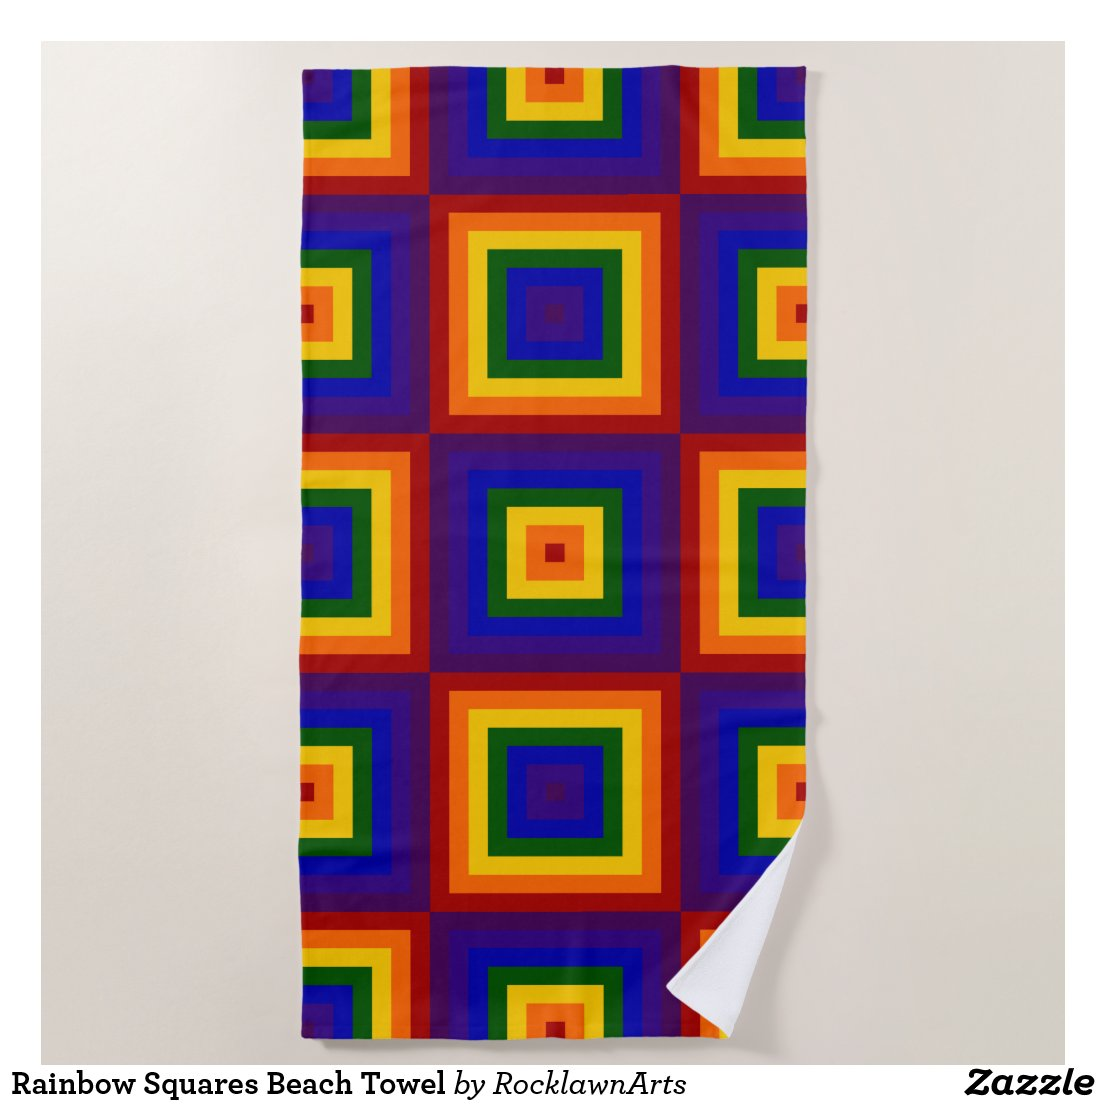 Rainbow Squares Beach Towel